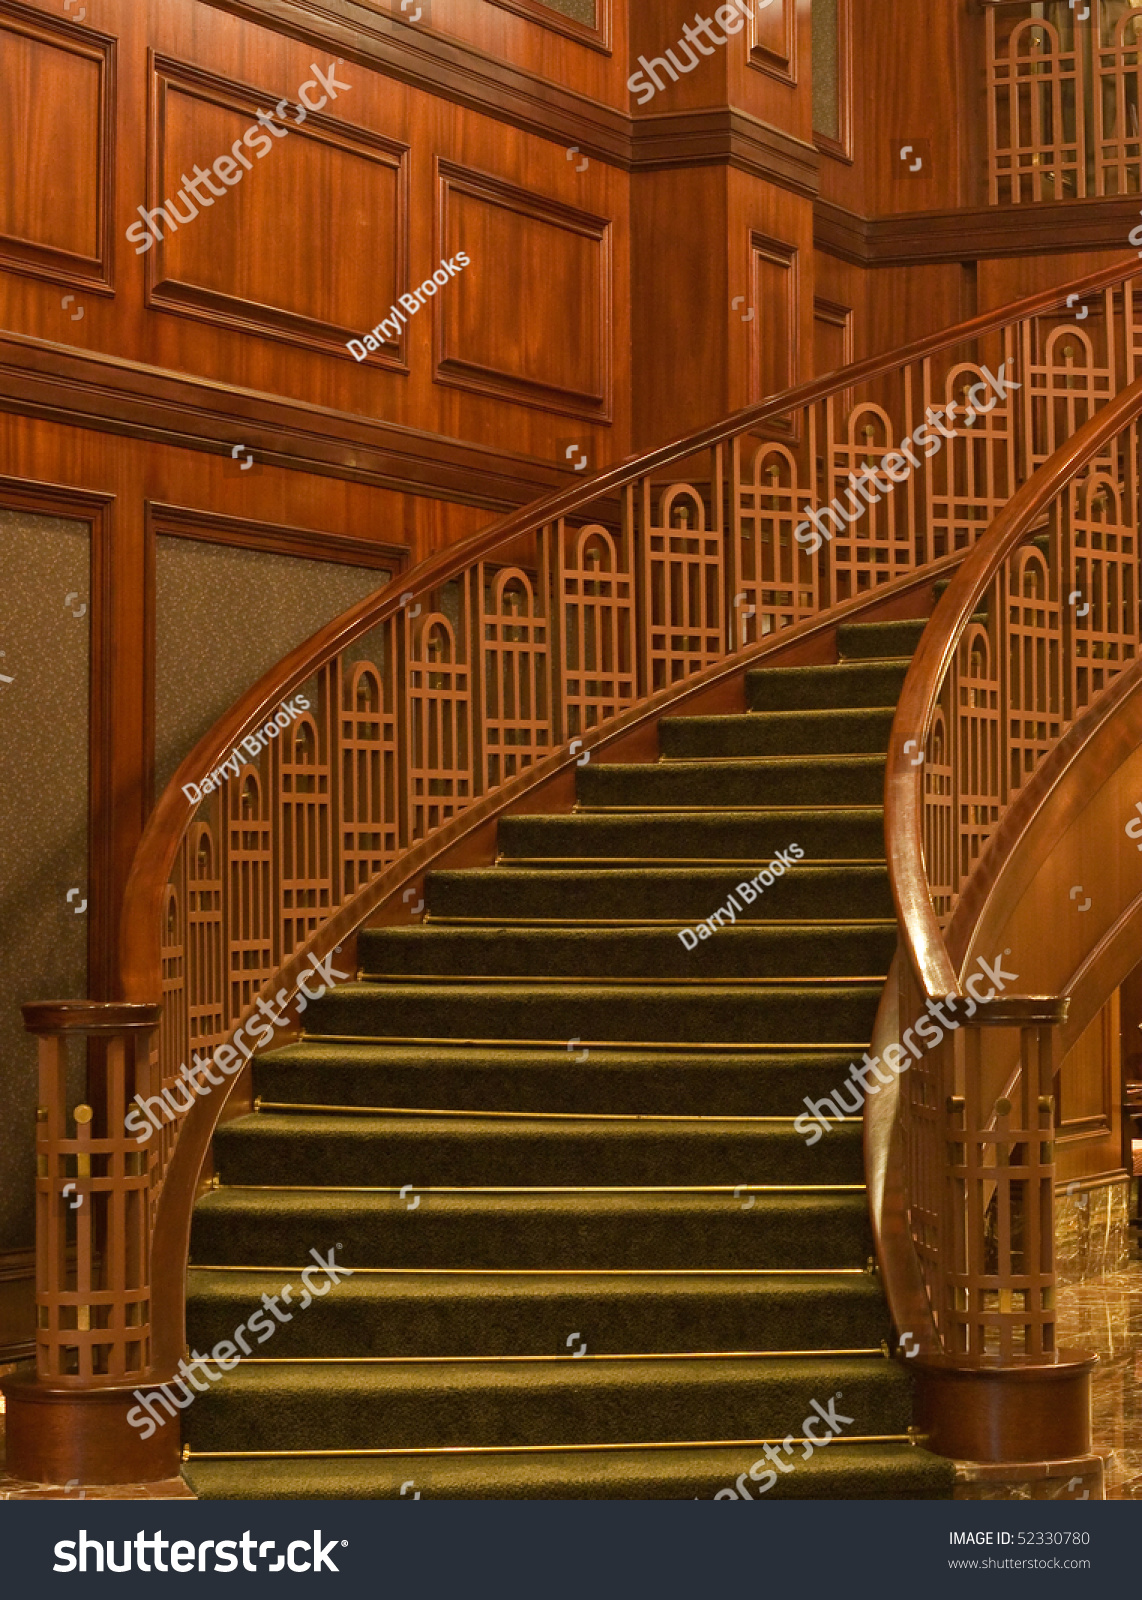 Paneled Staircase Curved Staircase Wood Paneled Office Green Stock Photo